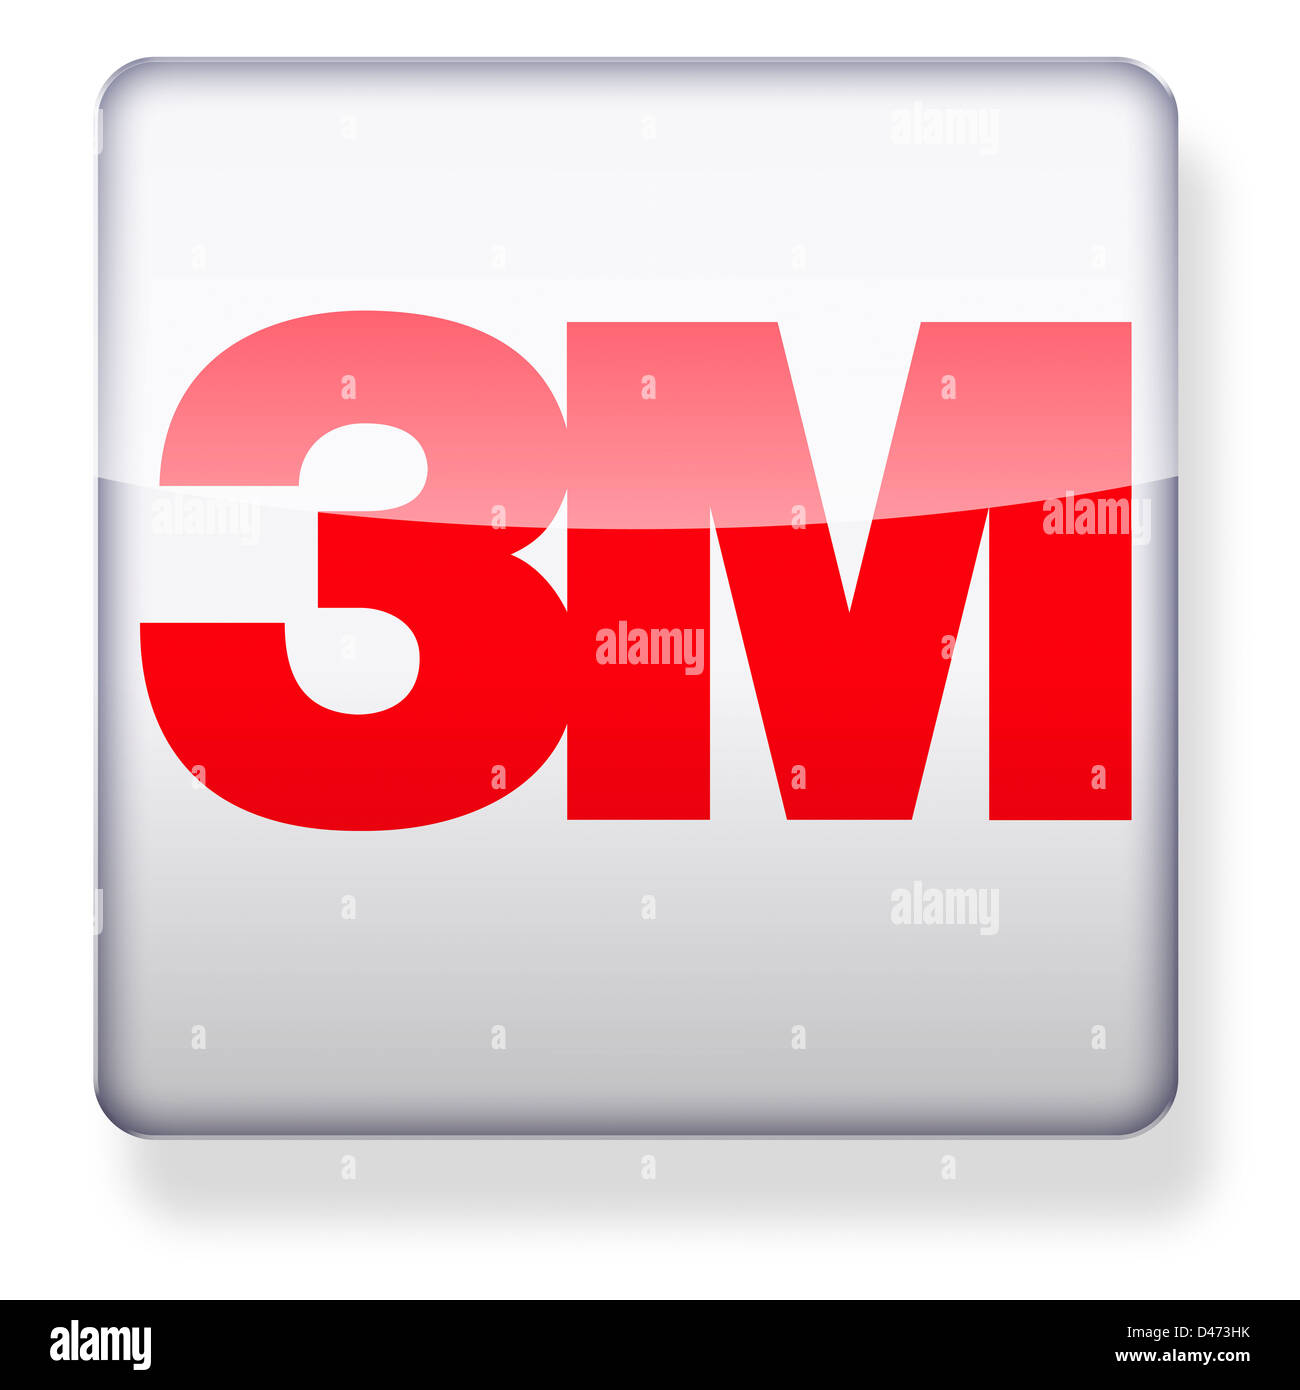 3M logo as an app icon  Clipping path included Stock Photo